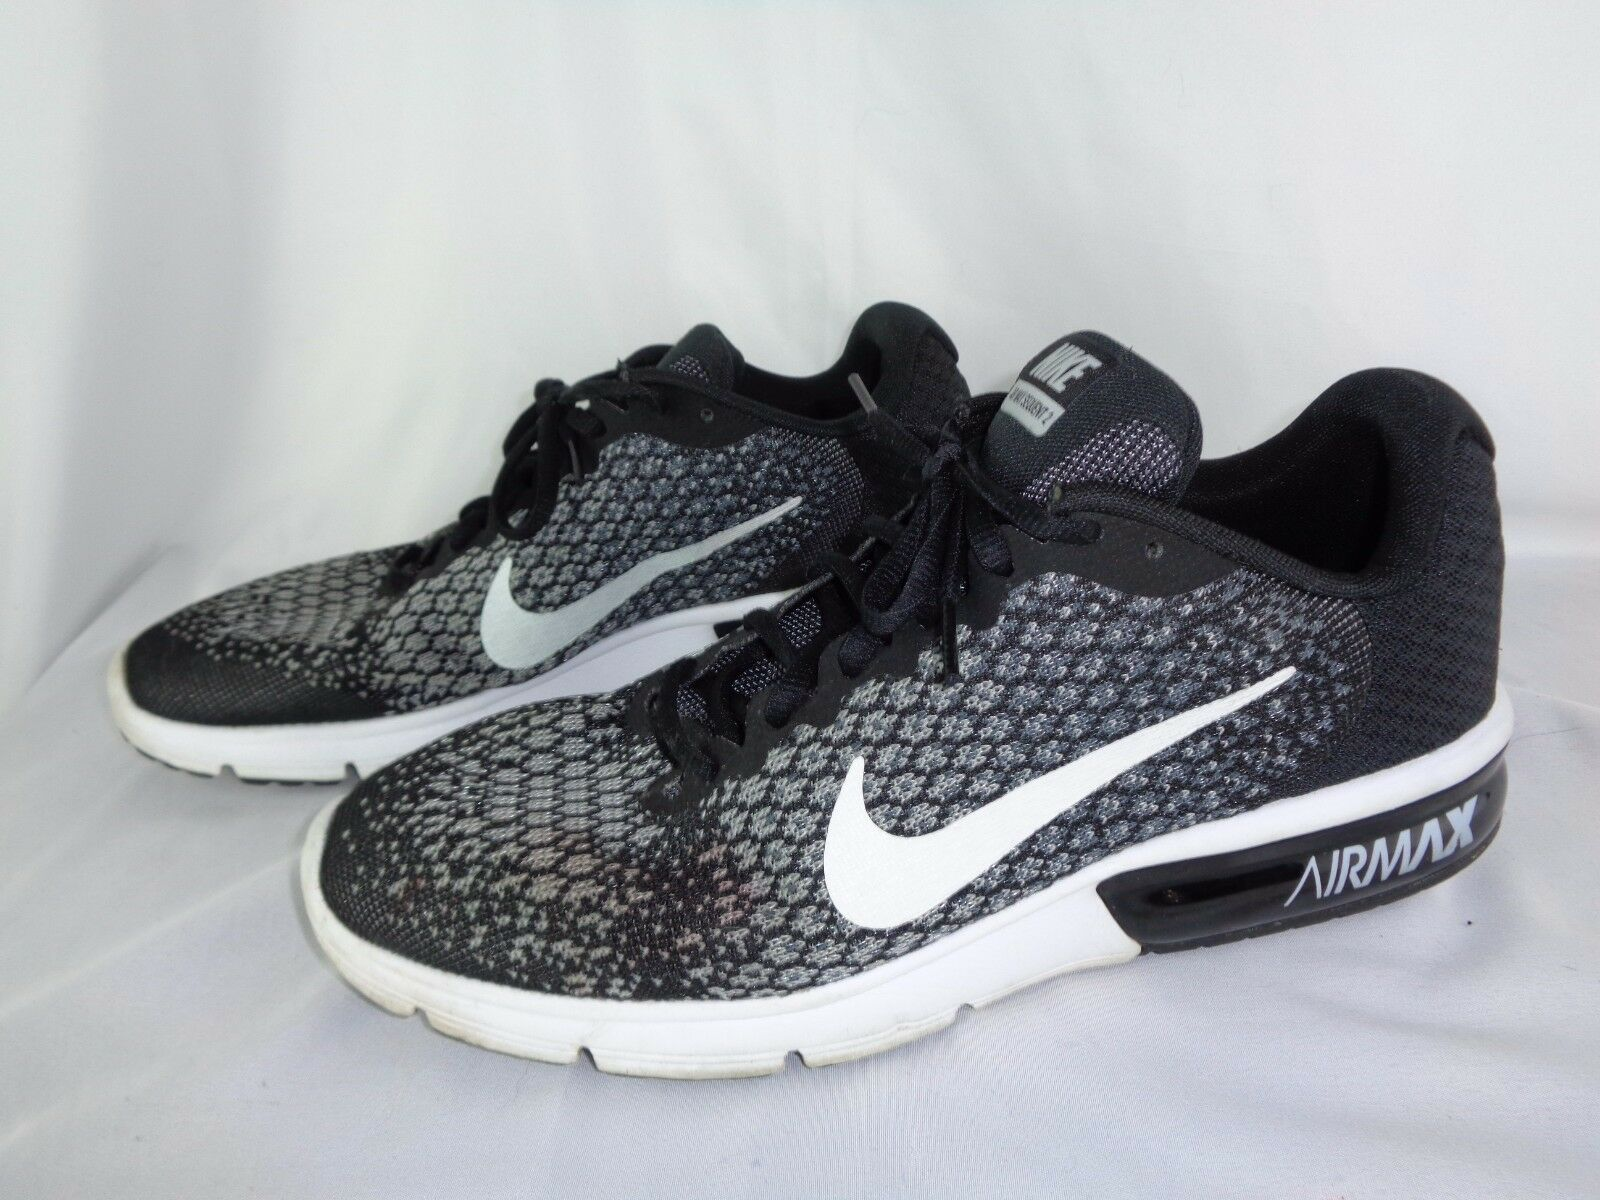 Nike Air Max Sequent 2 Mens 852461-005 Black & White Running Shoes Size 10.5